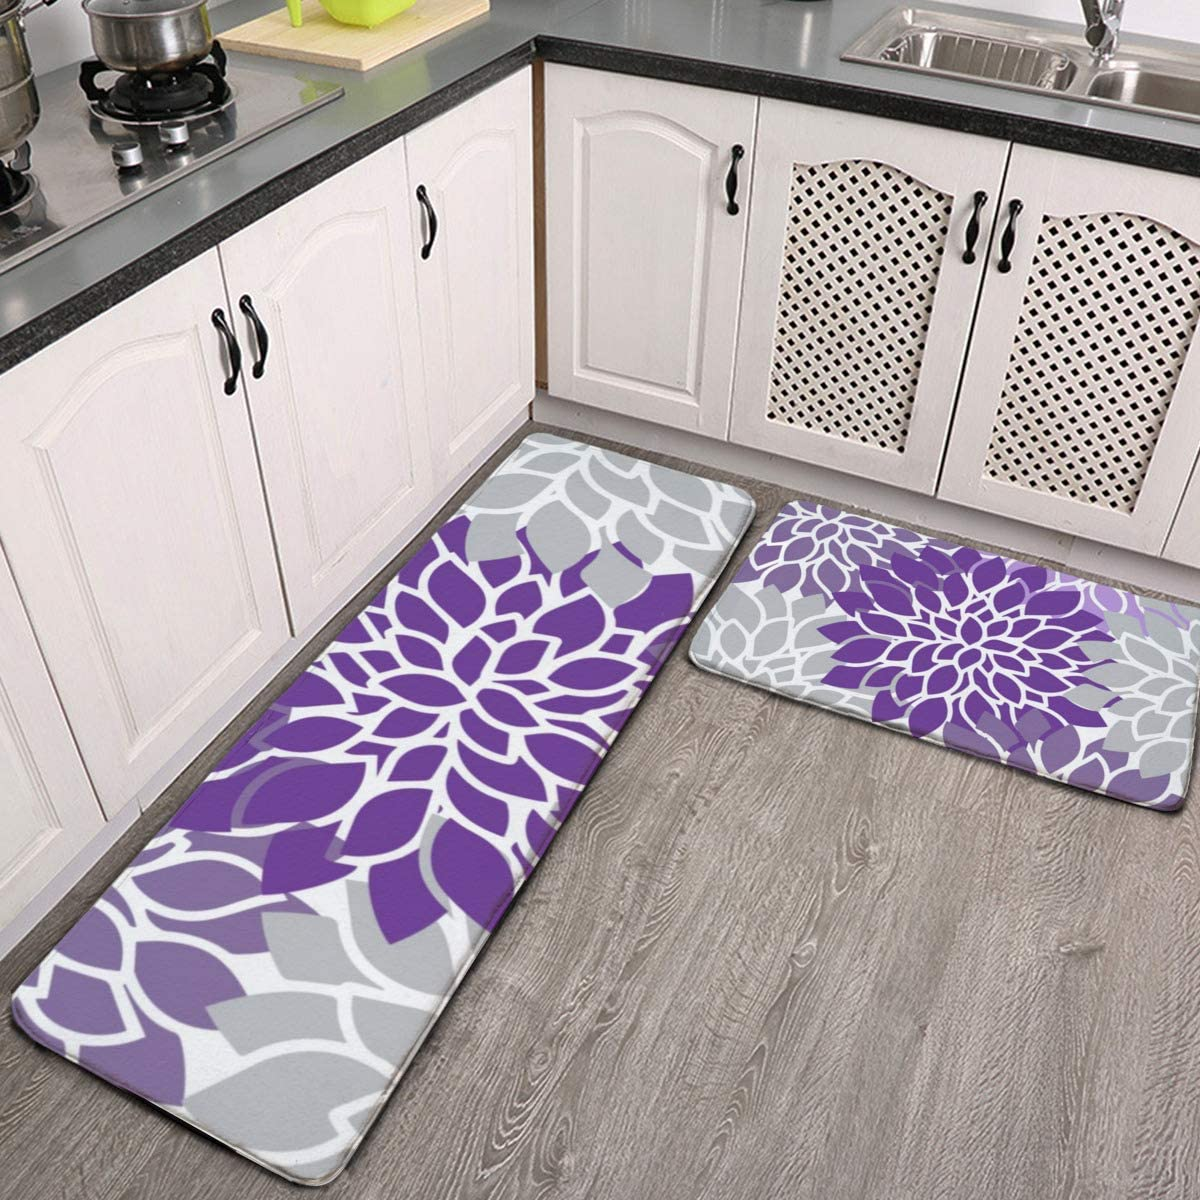 MGVDSES 2 Pcs Kitchen Rug Classic Set Modern Floral and Gray 2021 model Purple Non